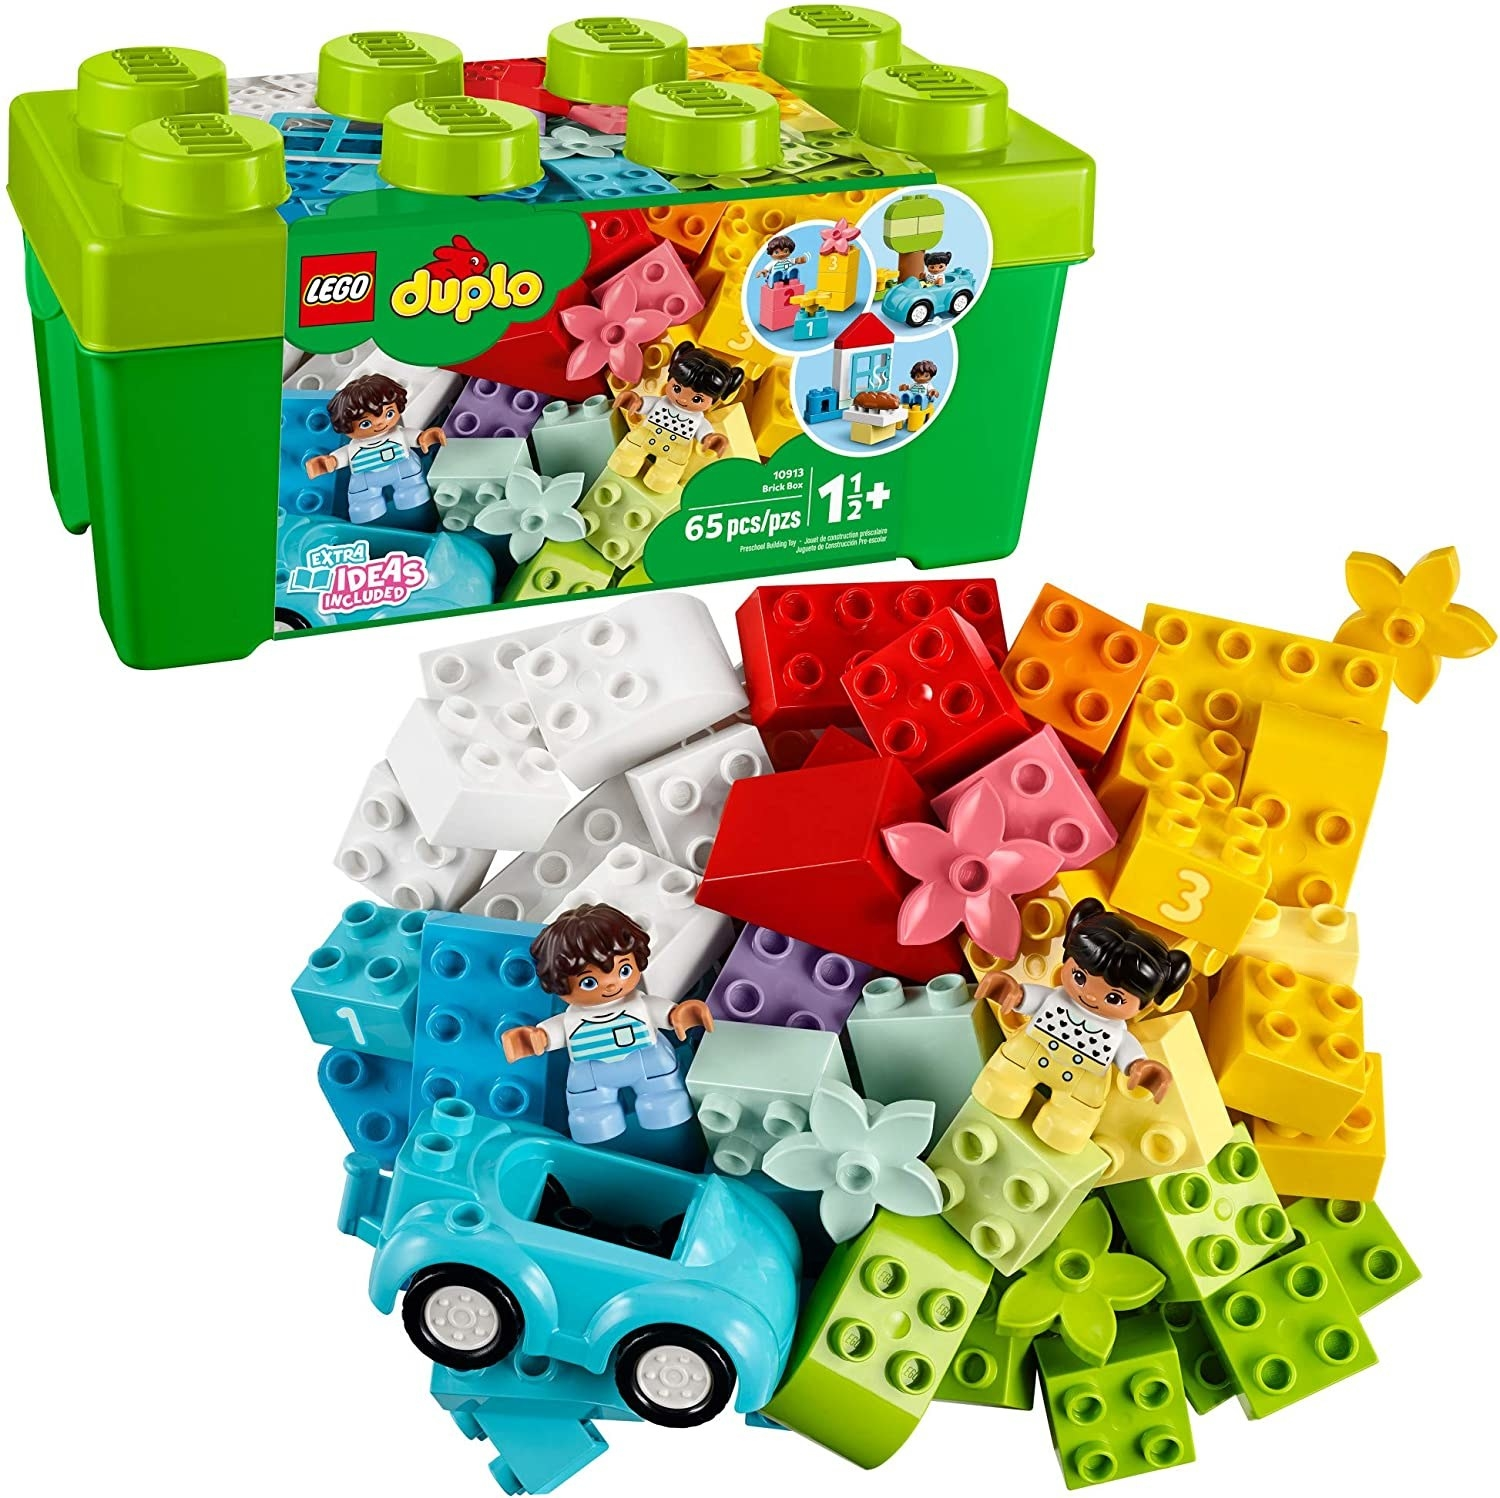 A 65-piece set of colorful LEGO DUPLO bricks.